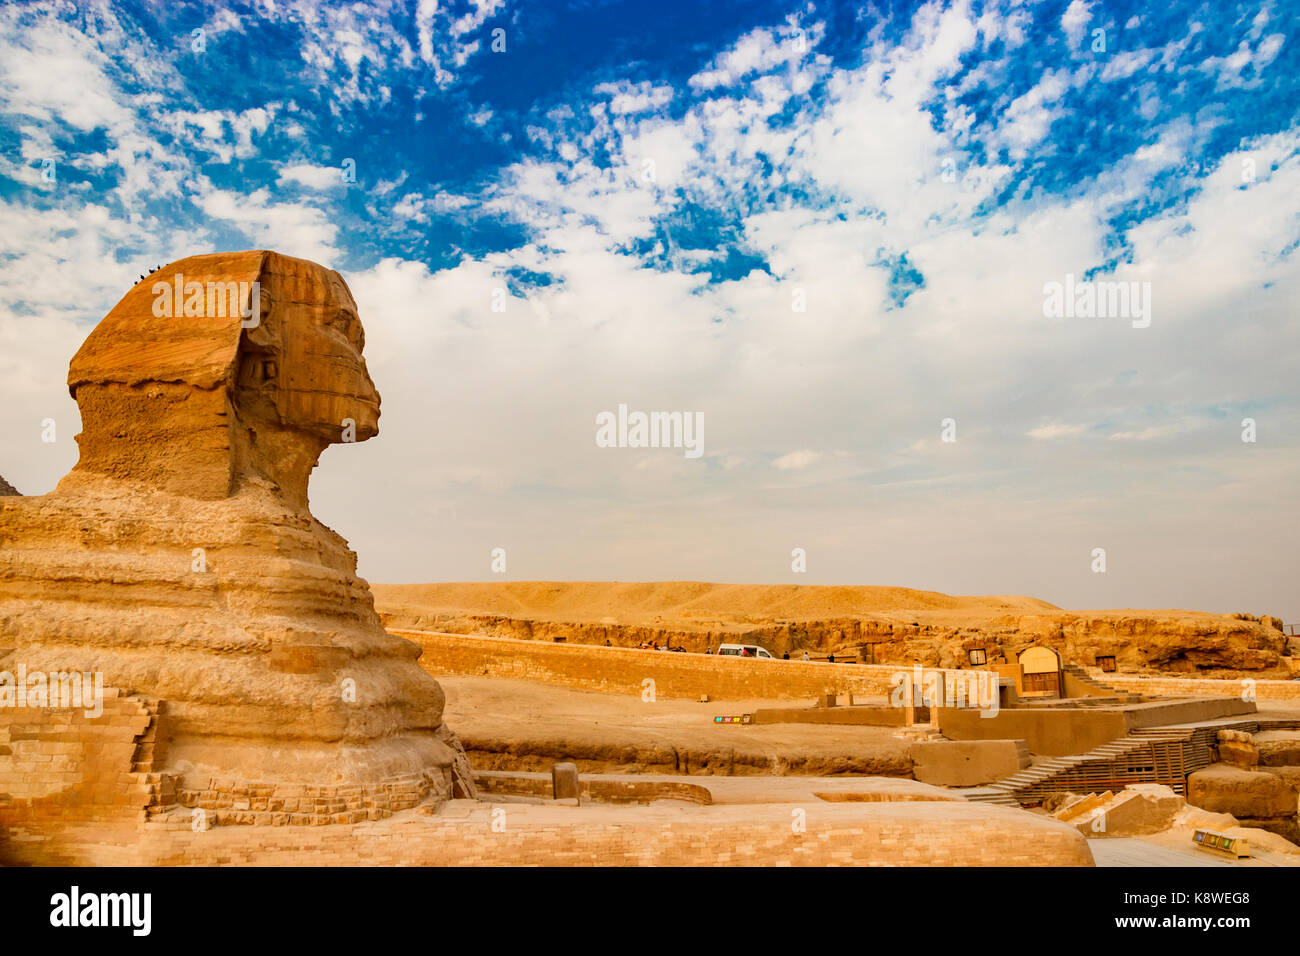 Sphinx near the pyramids in Giza. Cairo, Egypt - Stock Image